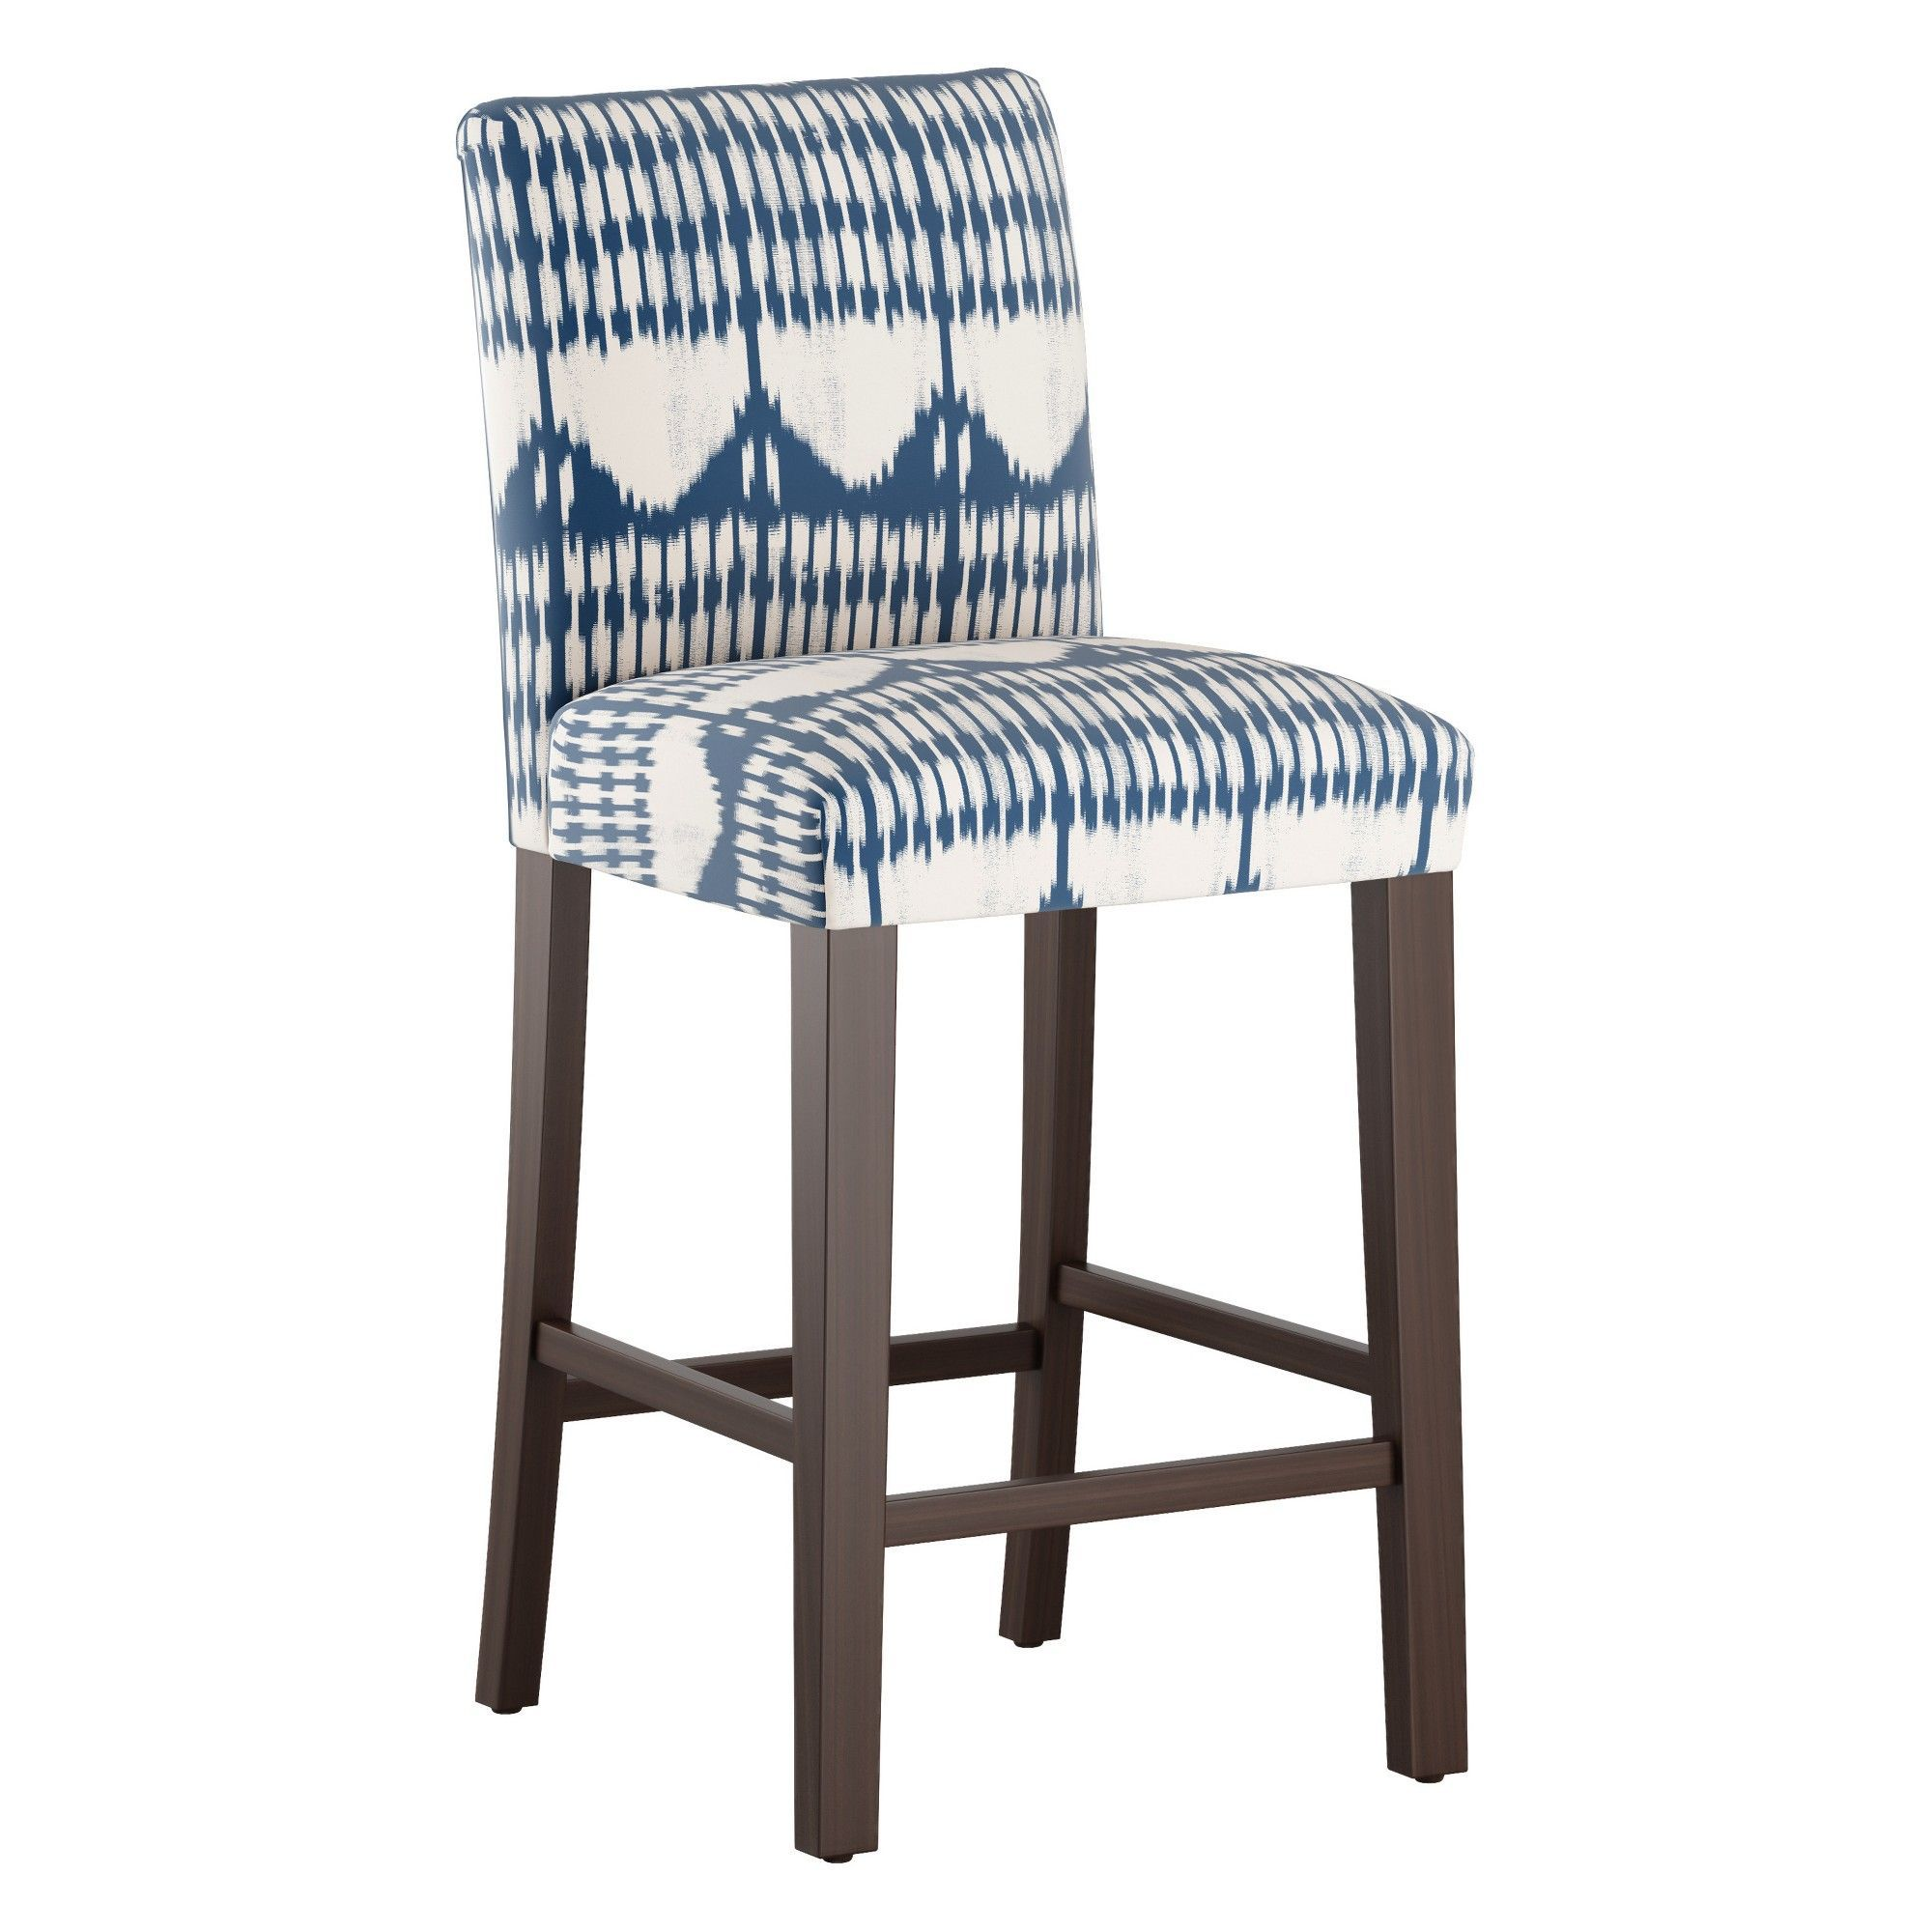 garden of set bar tabouret overstock stool blue carbon stools free home metal today loft inch shipping product baja